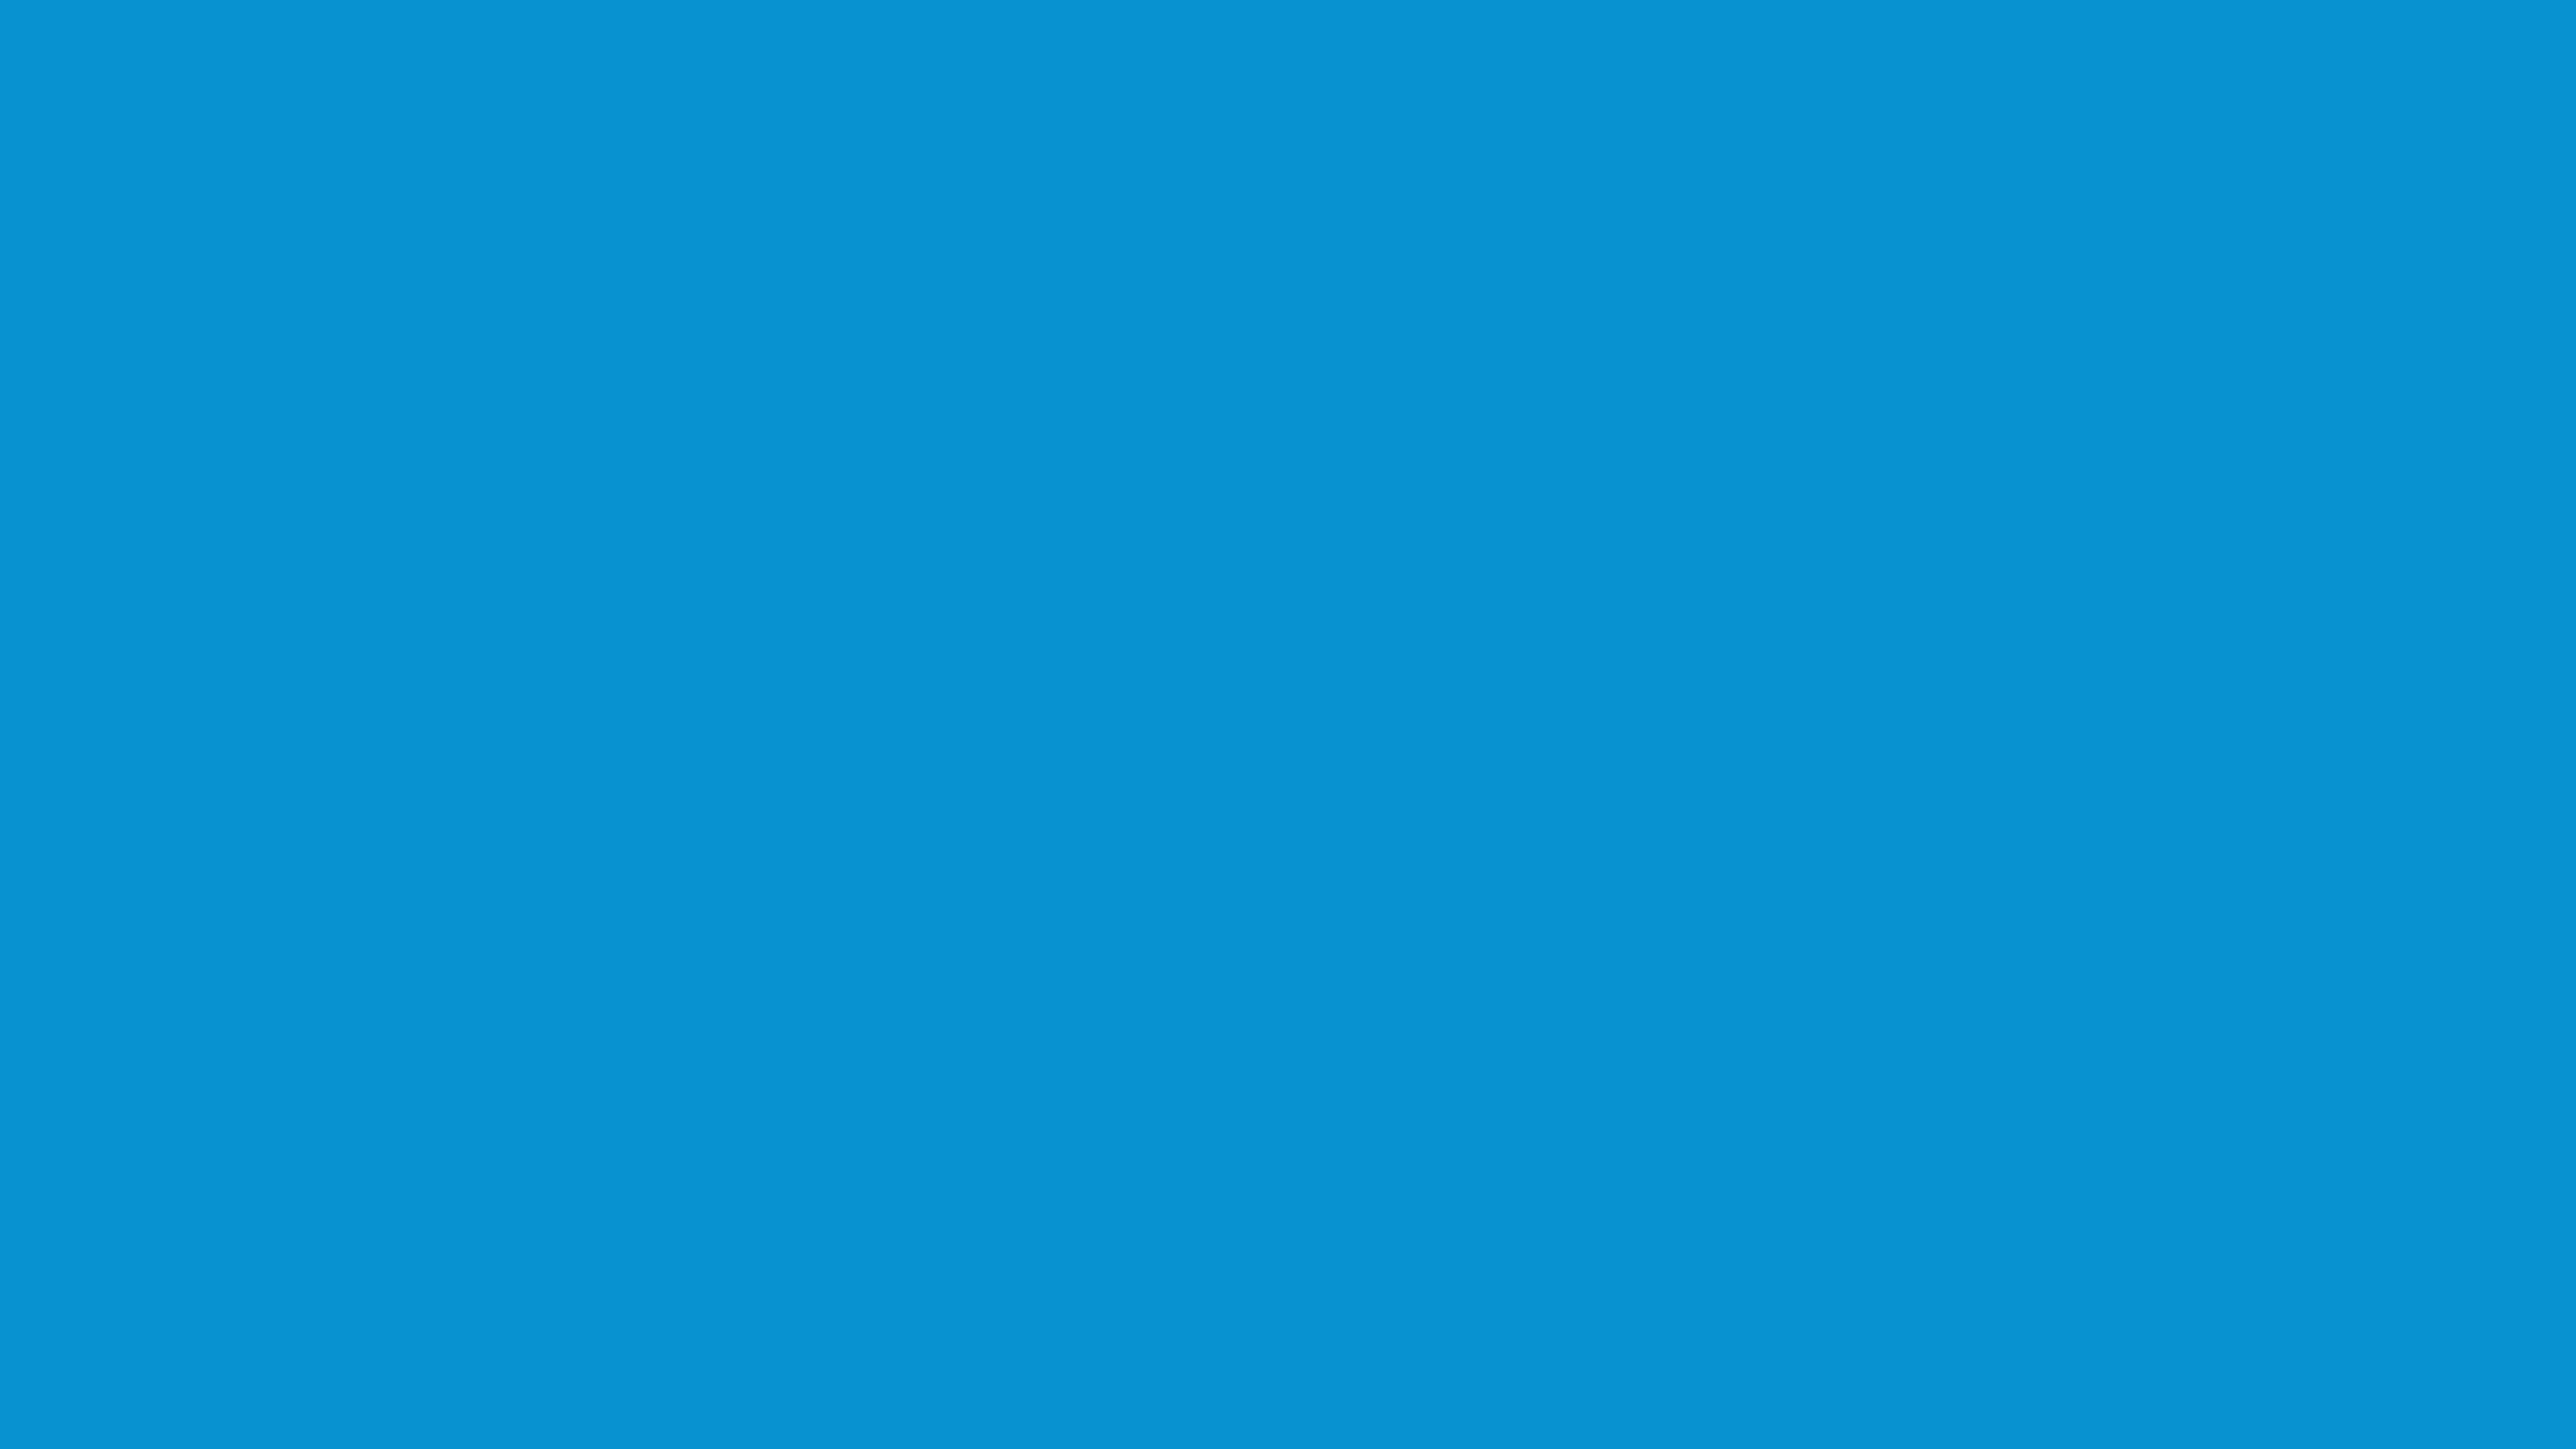 5120x2880 Rich Electric Blue Solid Color Background